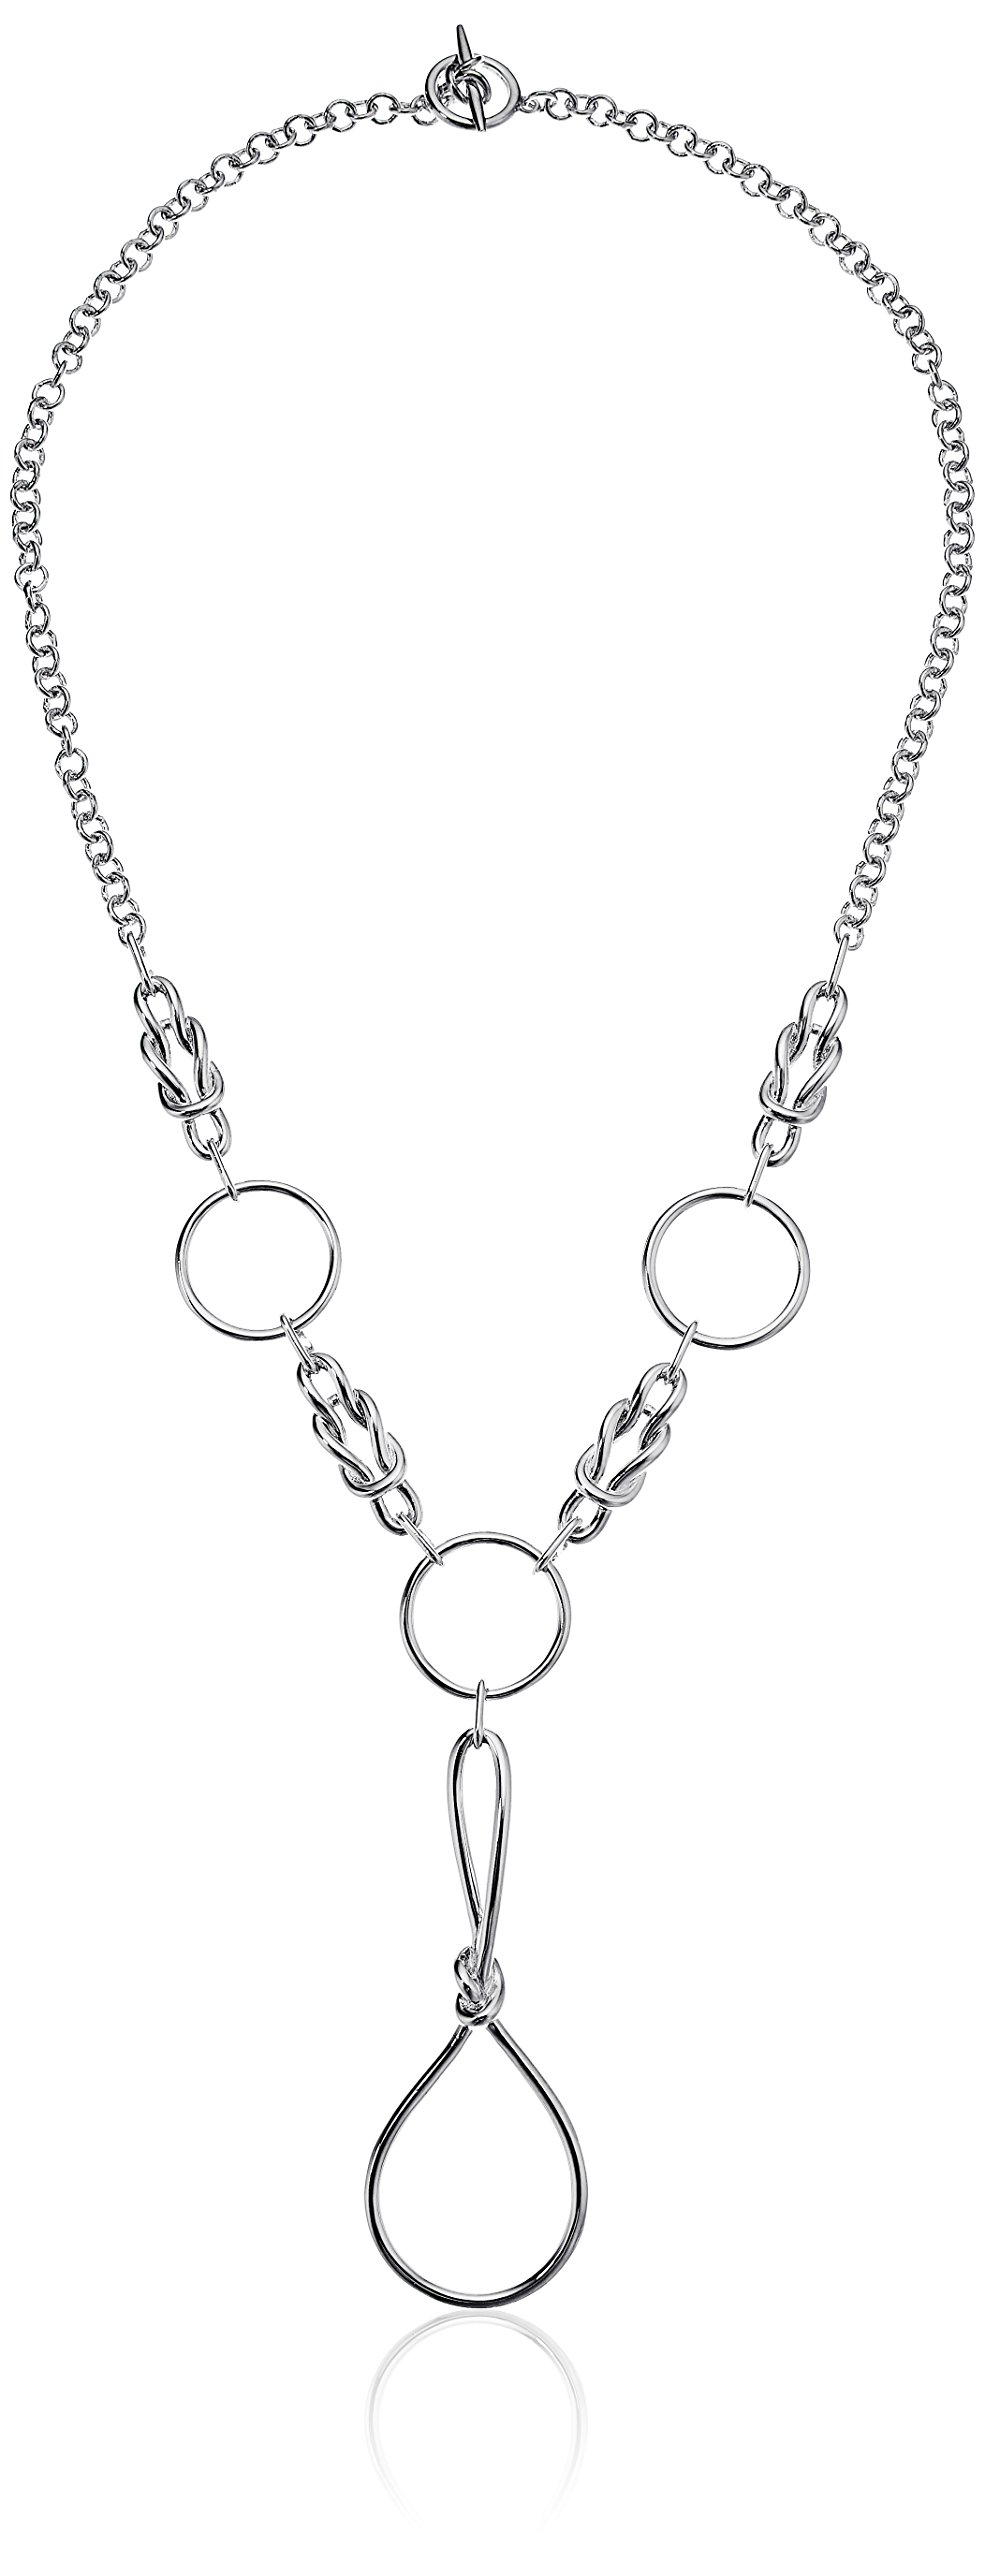 Noir Jewelry Cable Silver Y-Shape Necklace